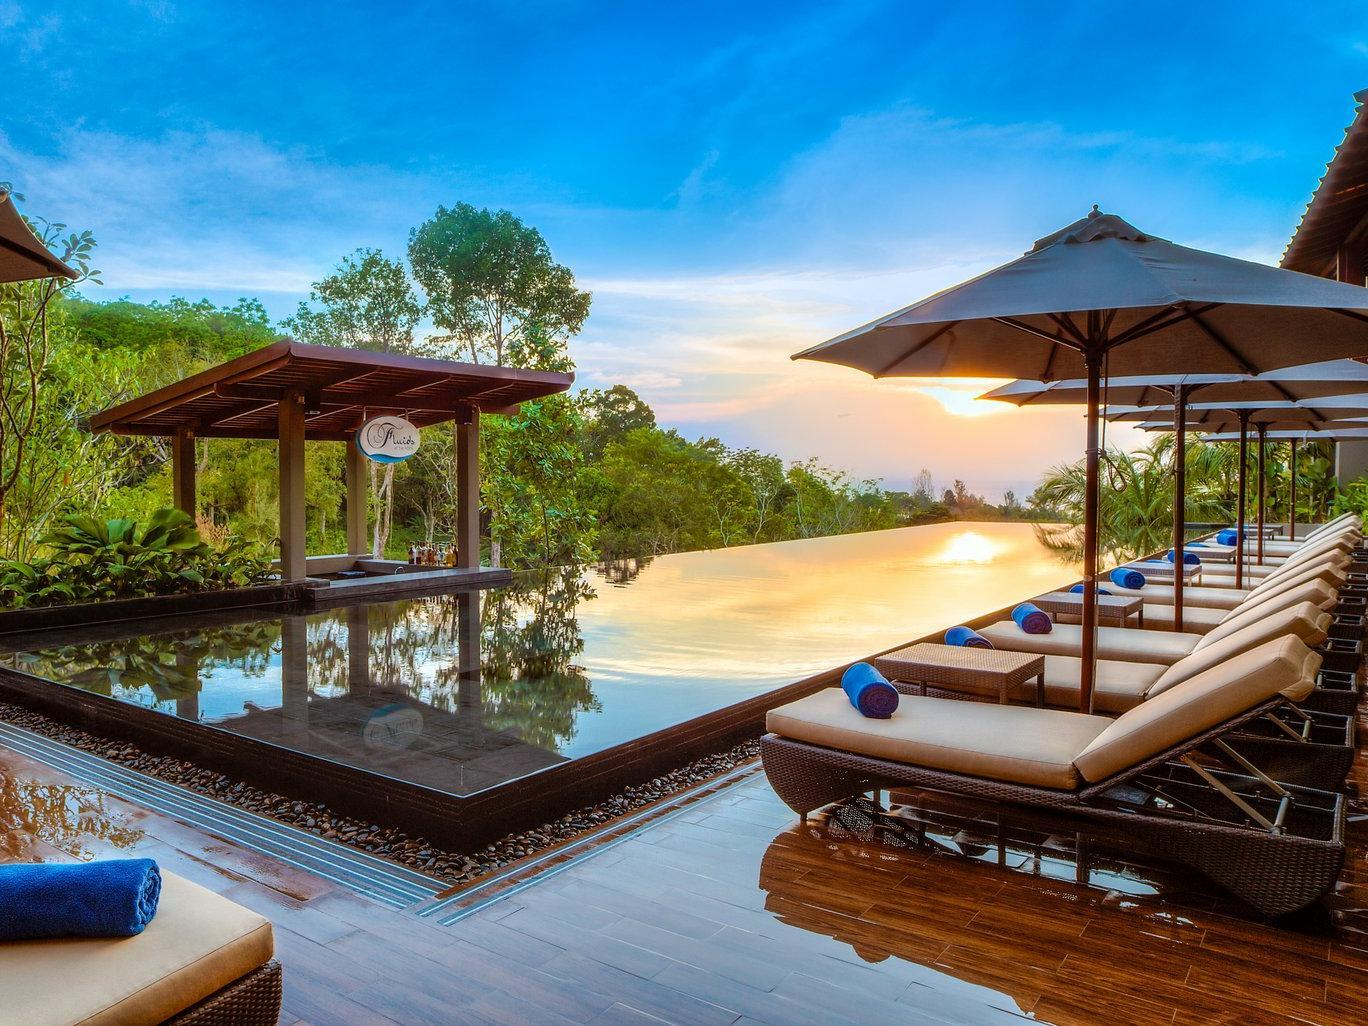 Avista Hideaway Resort & Spa Phuket Πουκέτ